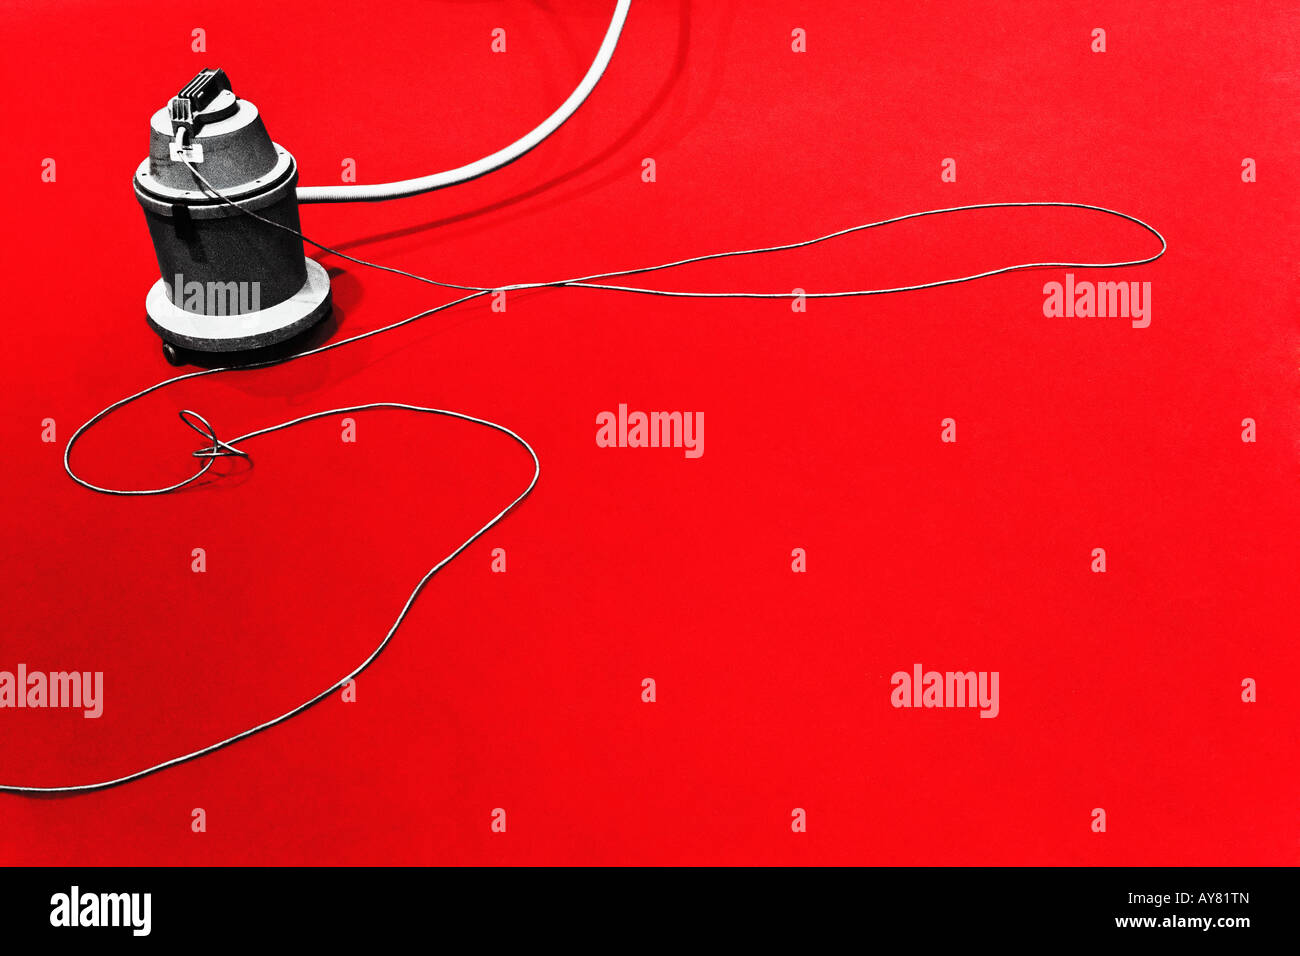 Vacuum Cleaner On Red Carpet Berlinale - Stock Image